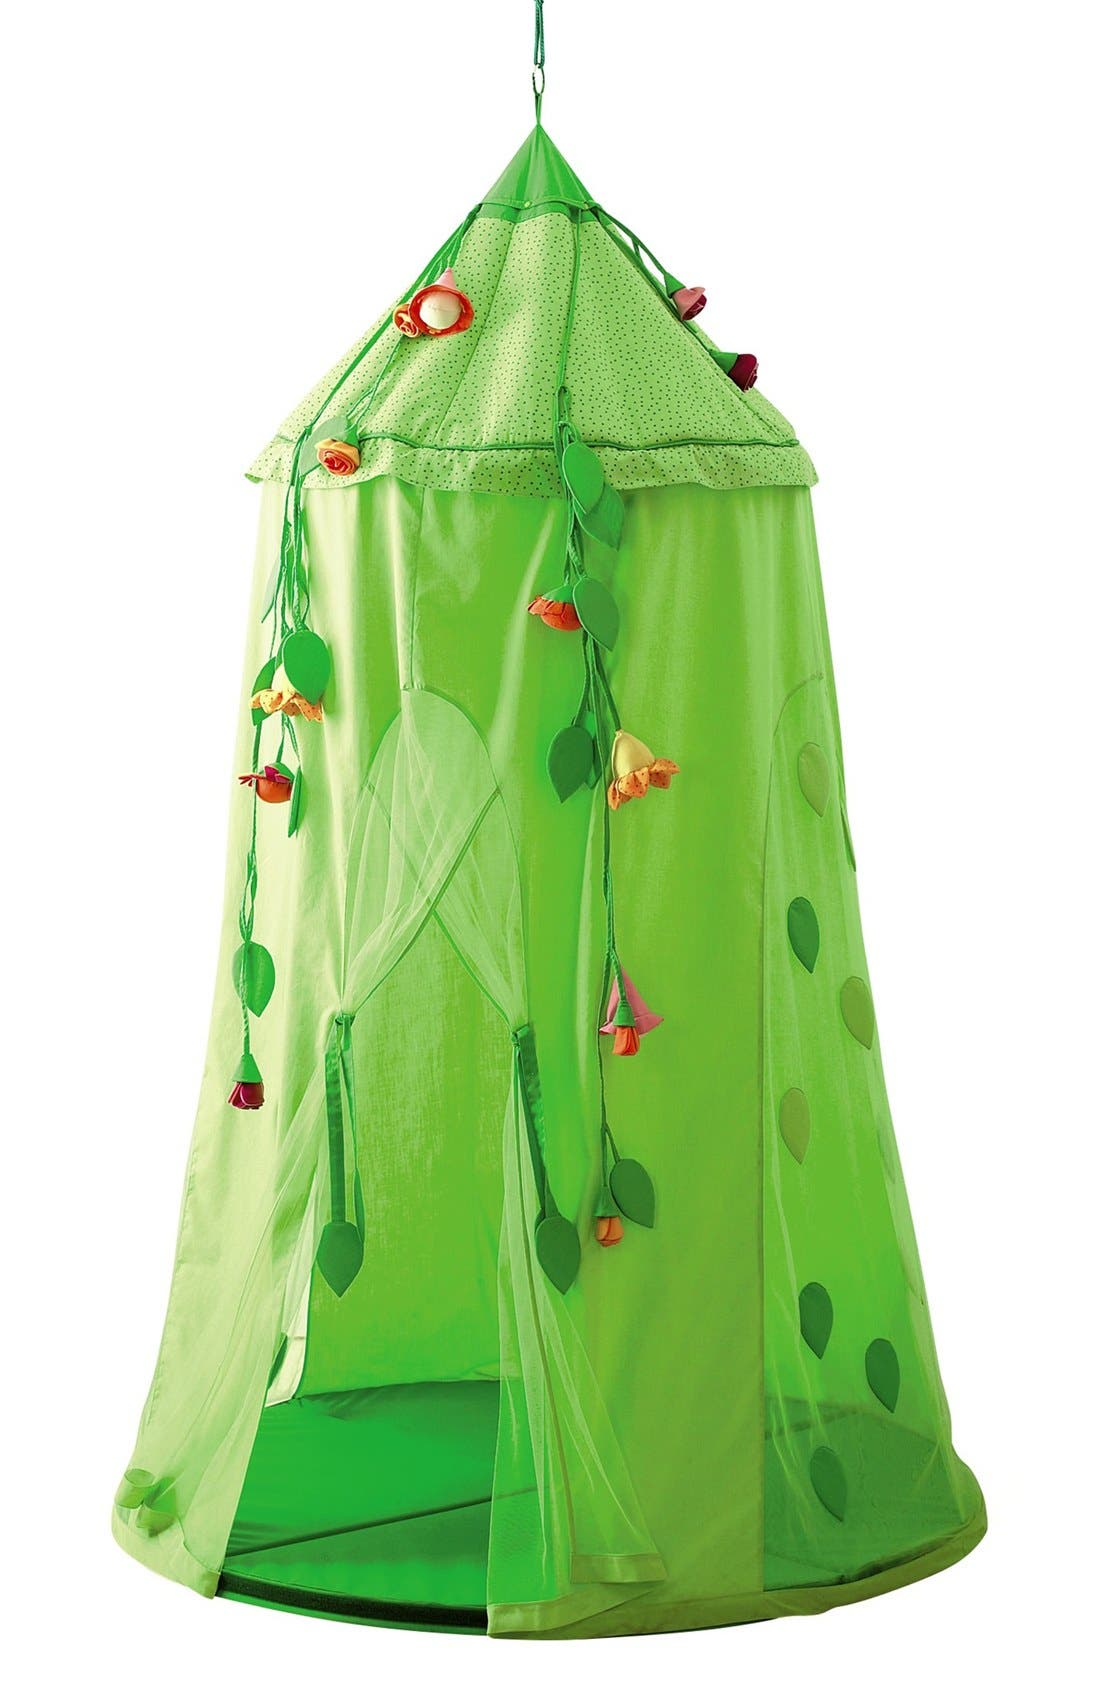 'Blossom Sky' Hanging Play Tent,                             Alternate thumbnail 3, color,                             Green